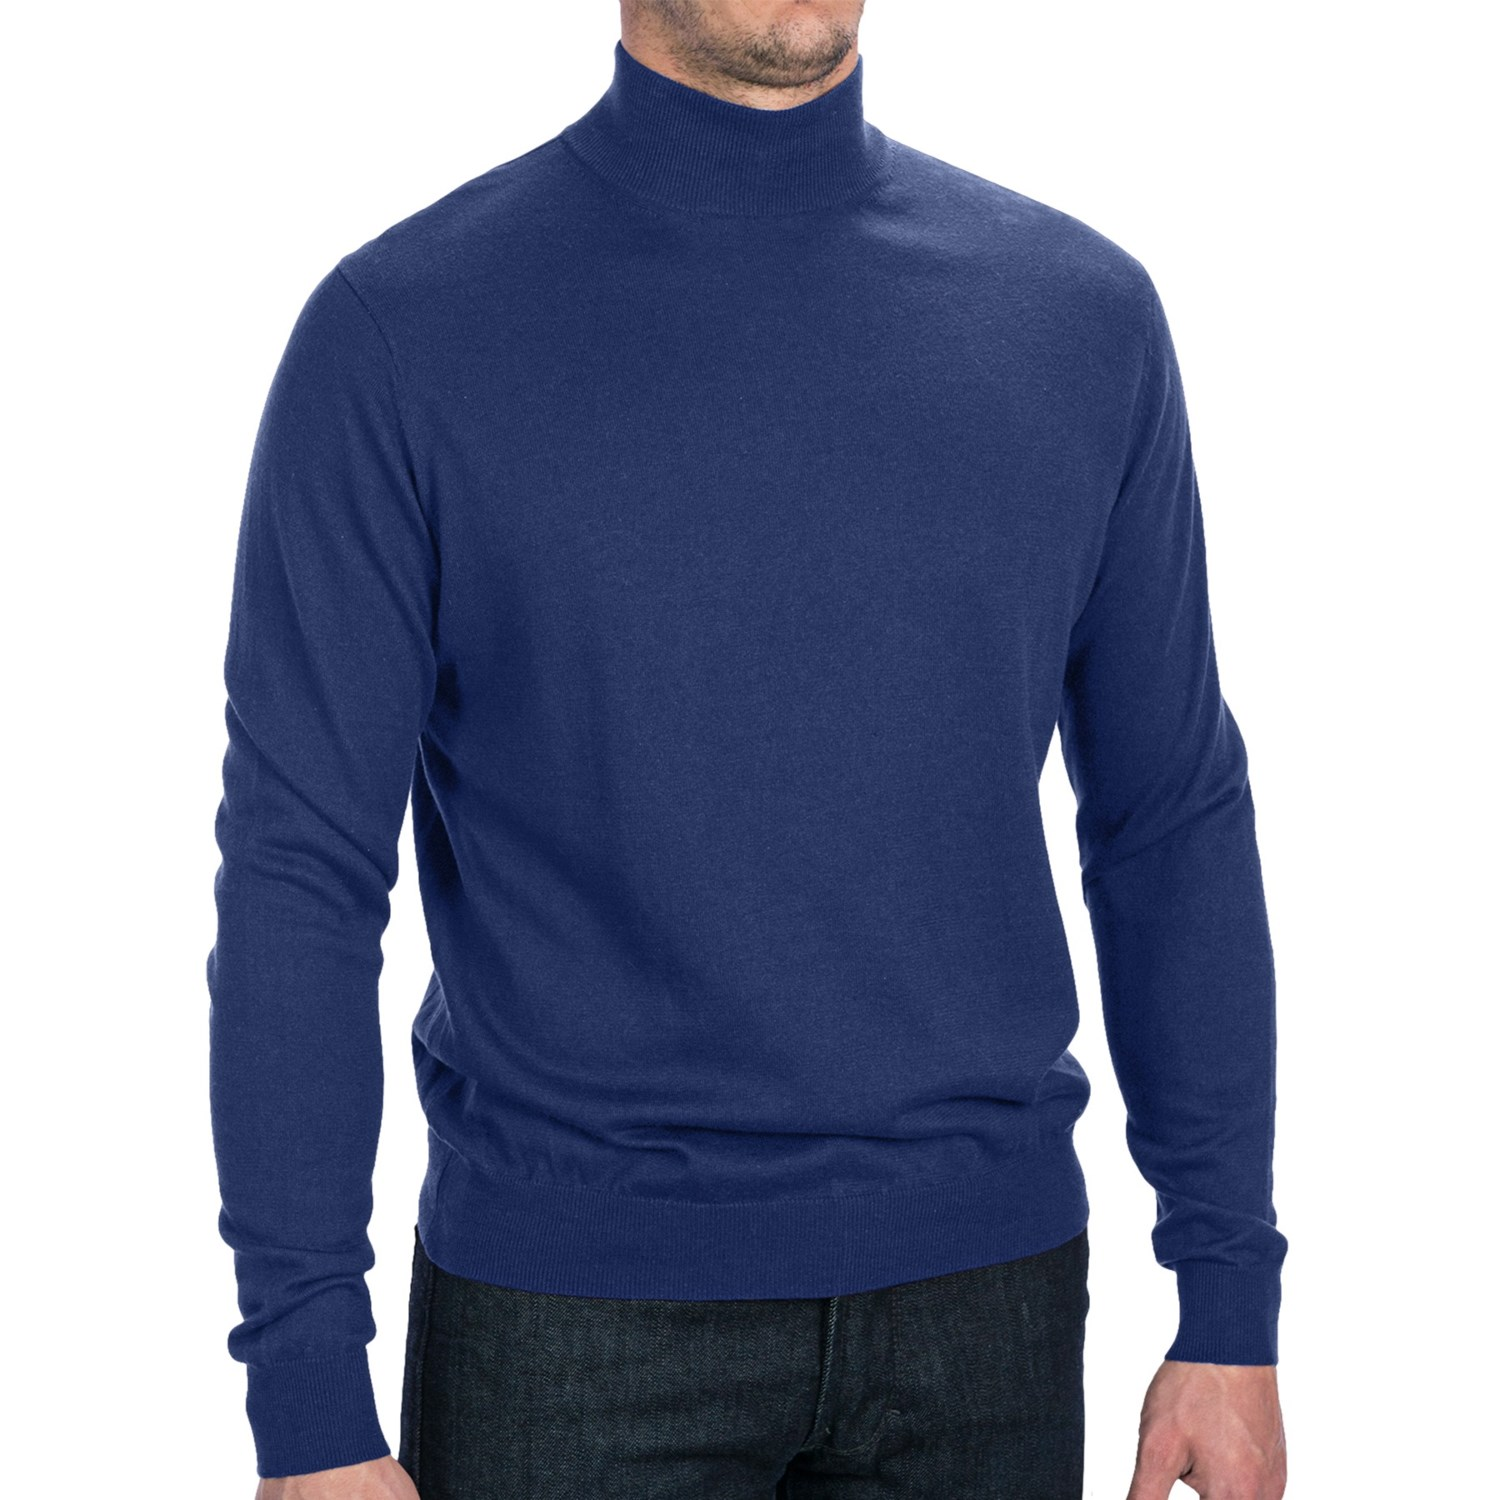 Men's Sweaters Check out our collection of men's sweaters to find the perfect fit for you. With temperatures dropping, it's important to stay warm, without losing any of your style.